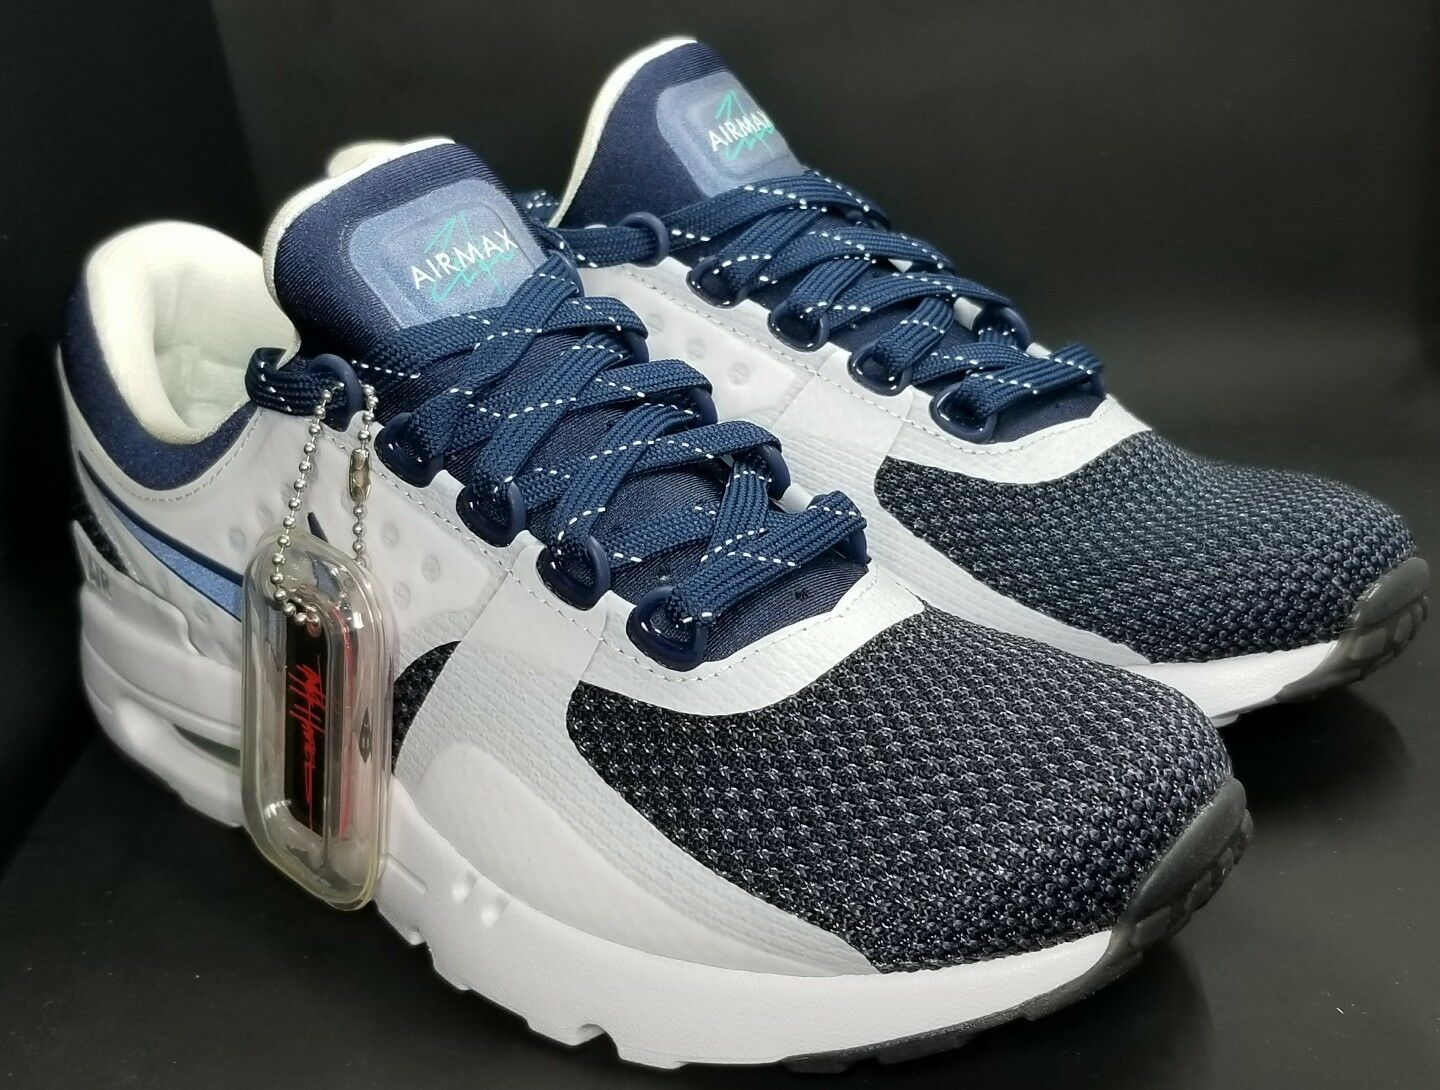 finest selection 84c98 75ece item 1 Nike Air Max Zero OG QS White Midnight Navy 789695-104 Sz 6.5  LIMITED -Nike Air Max Zero OG QS White Midnight Navy 789695-104 Sz 6.5  LIMITED